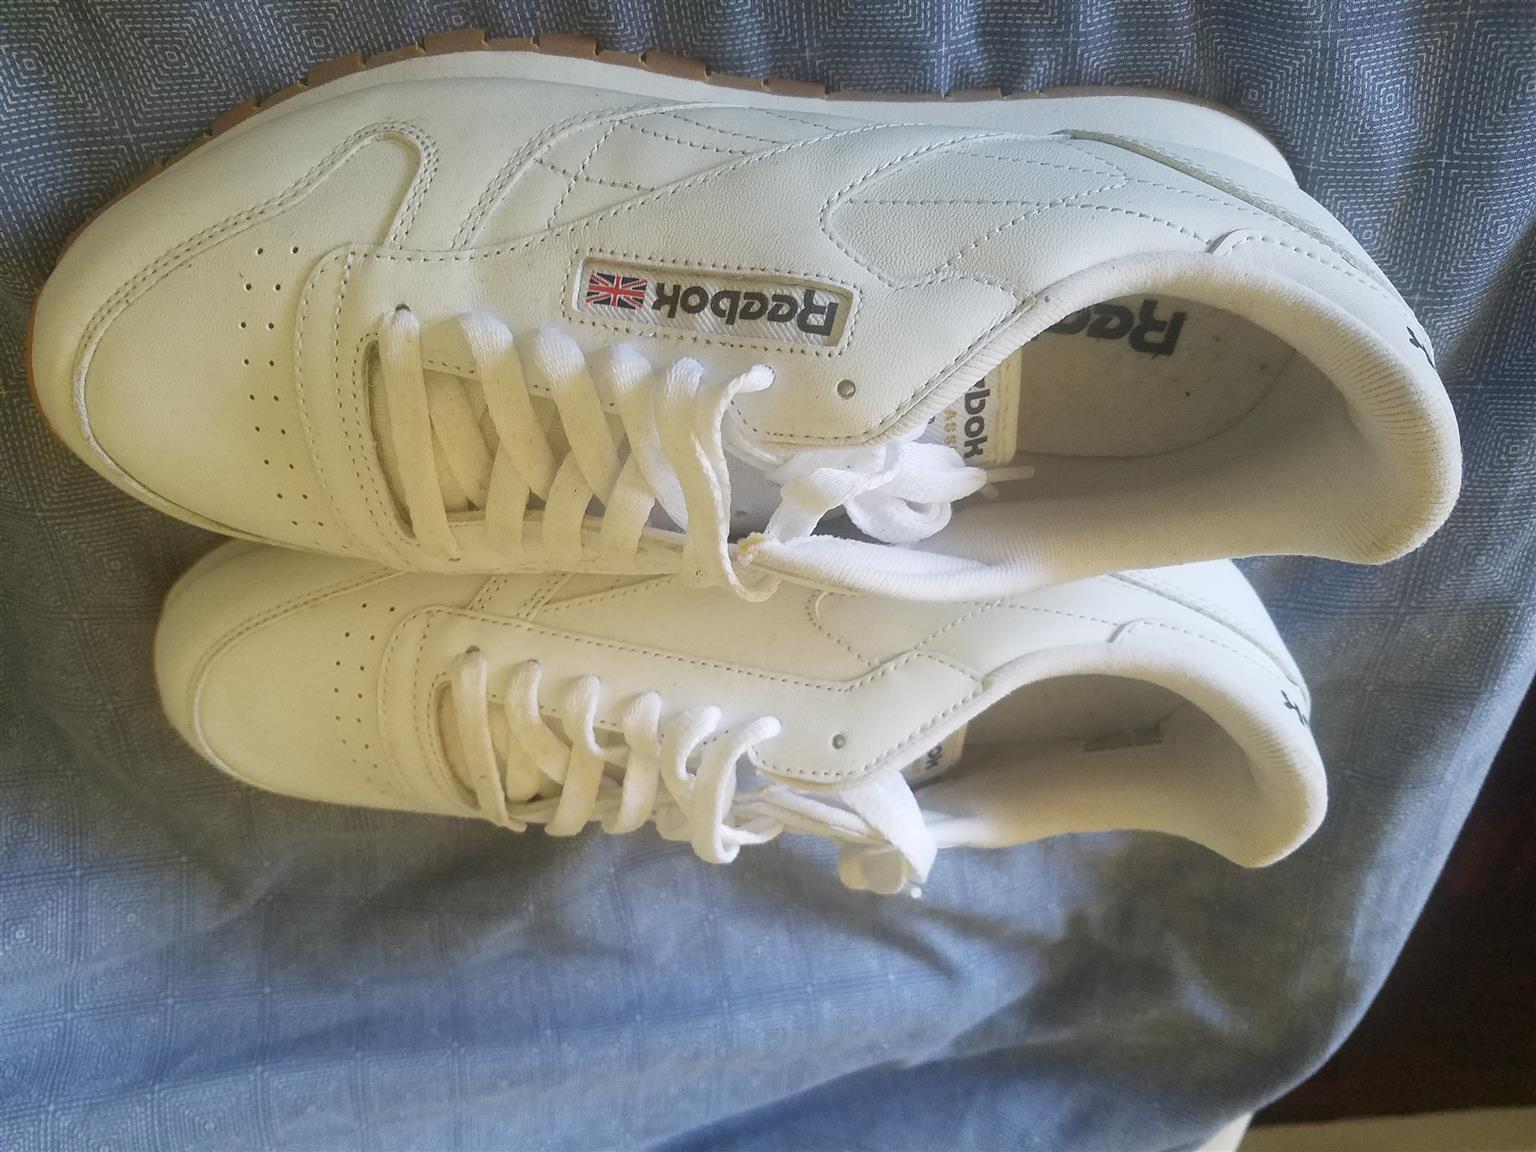 2 pair of new classic reebok sneakers white size 10.usa